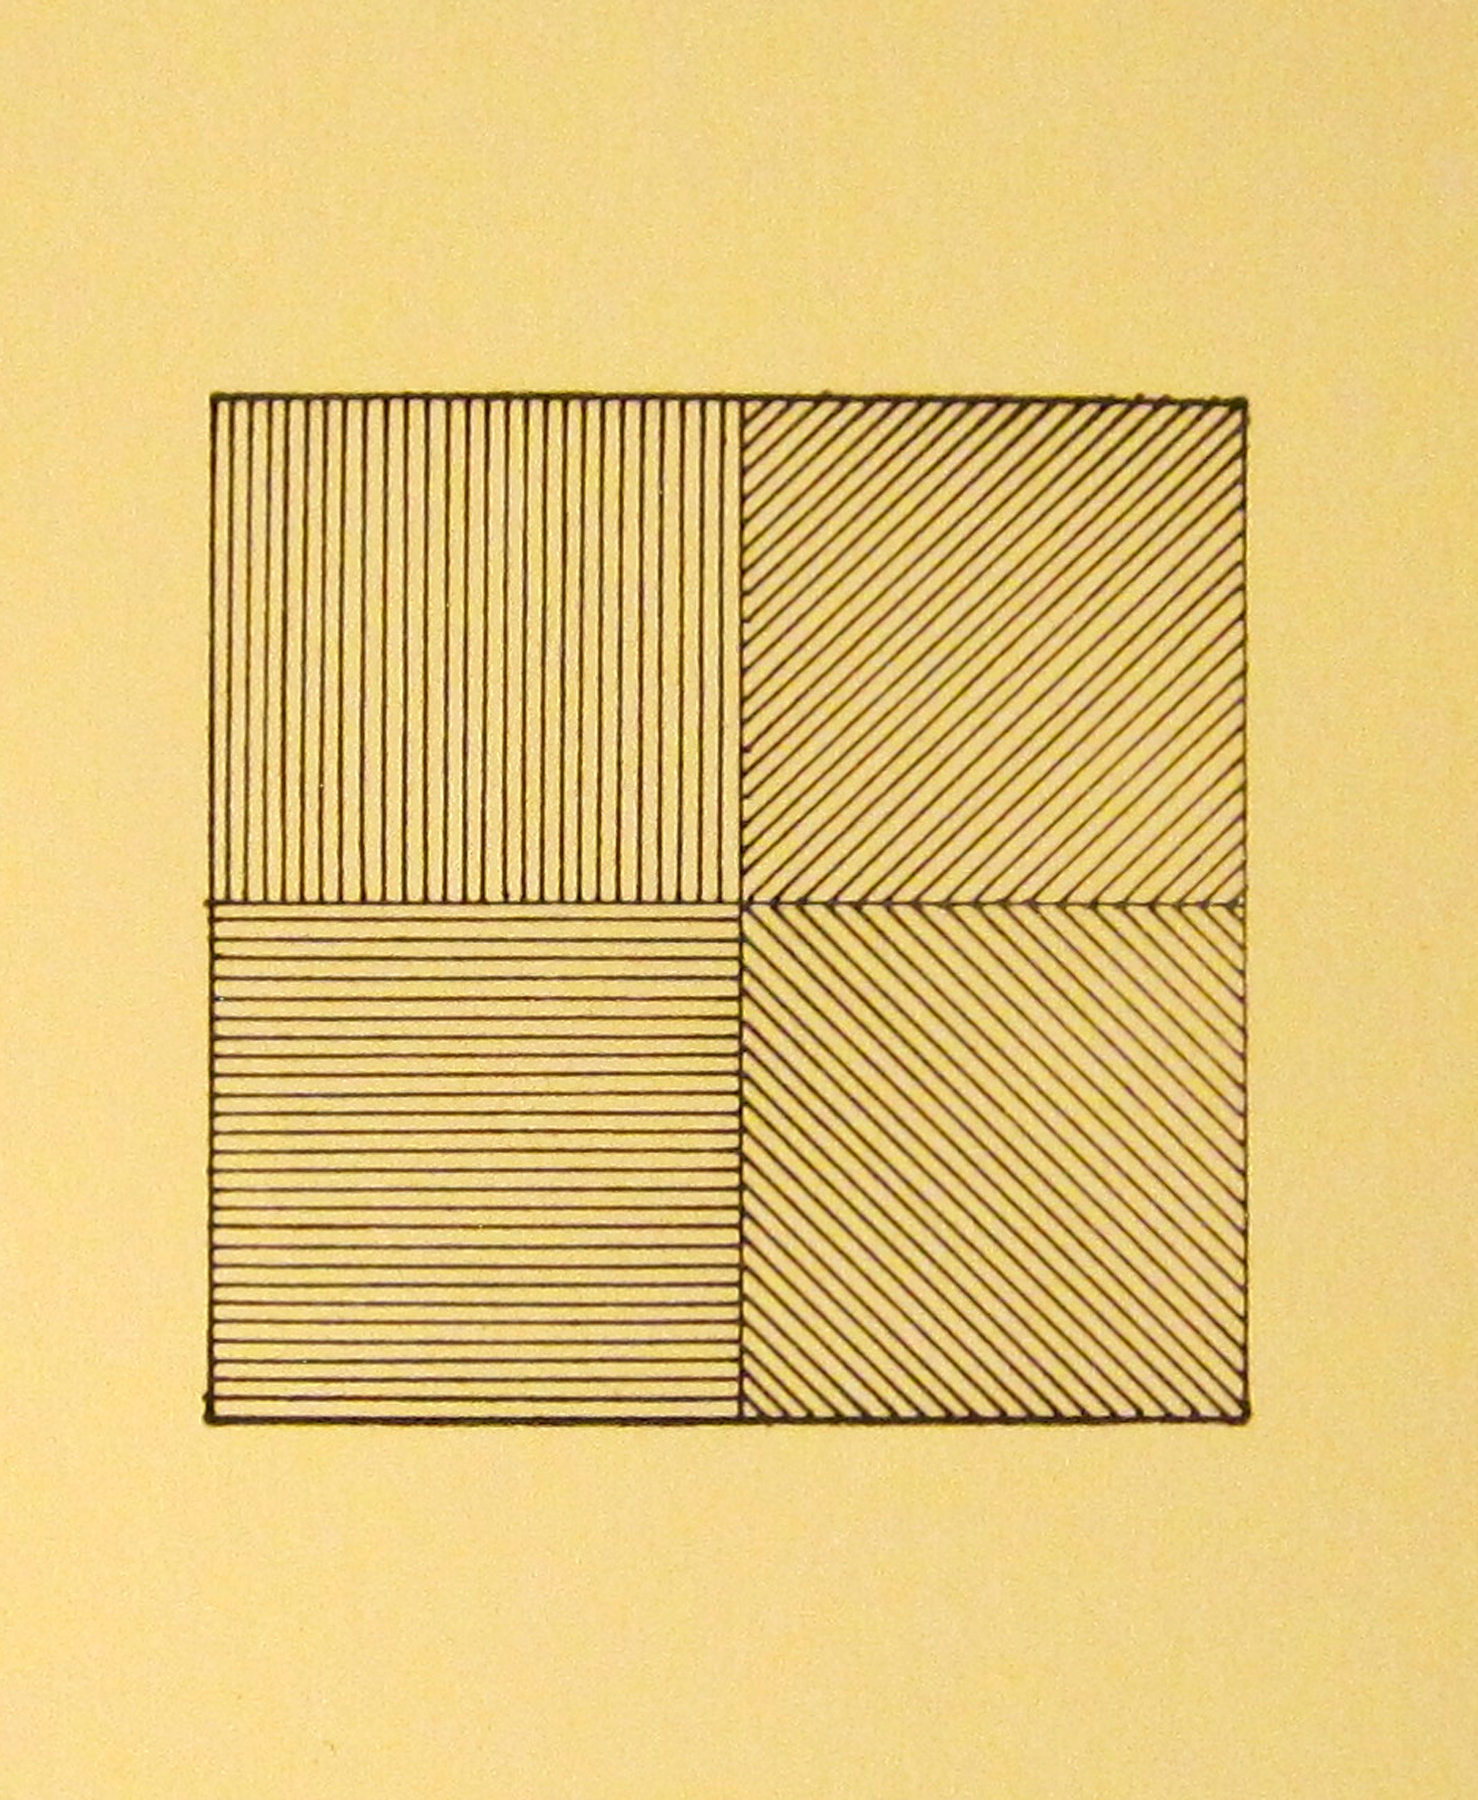 Sol LeWitt (American, 1928–2007), Lines in Four Directions, from the Rubber Stamp Portfolio, 1976, published 1977. Rubber stamp print. Image: 2 × 2 in. (5.08 × 5.08 cm); sheet: 8 × 8 in. (20.32 × 20.32 cm). Gift of Virginia M. and J. Thomas Maher III M1994.263.6. © Artists Rights Society (ARS), New York.